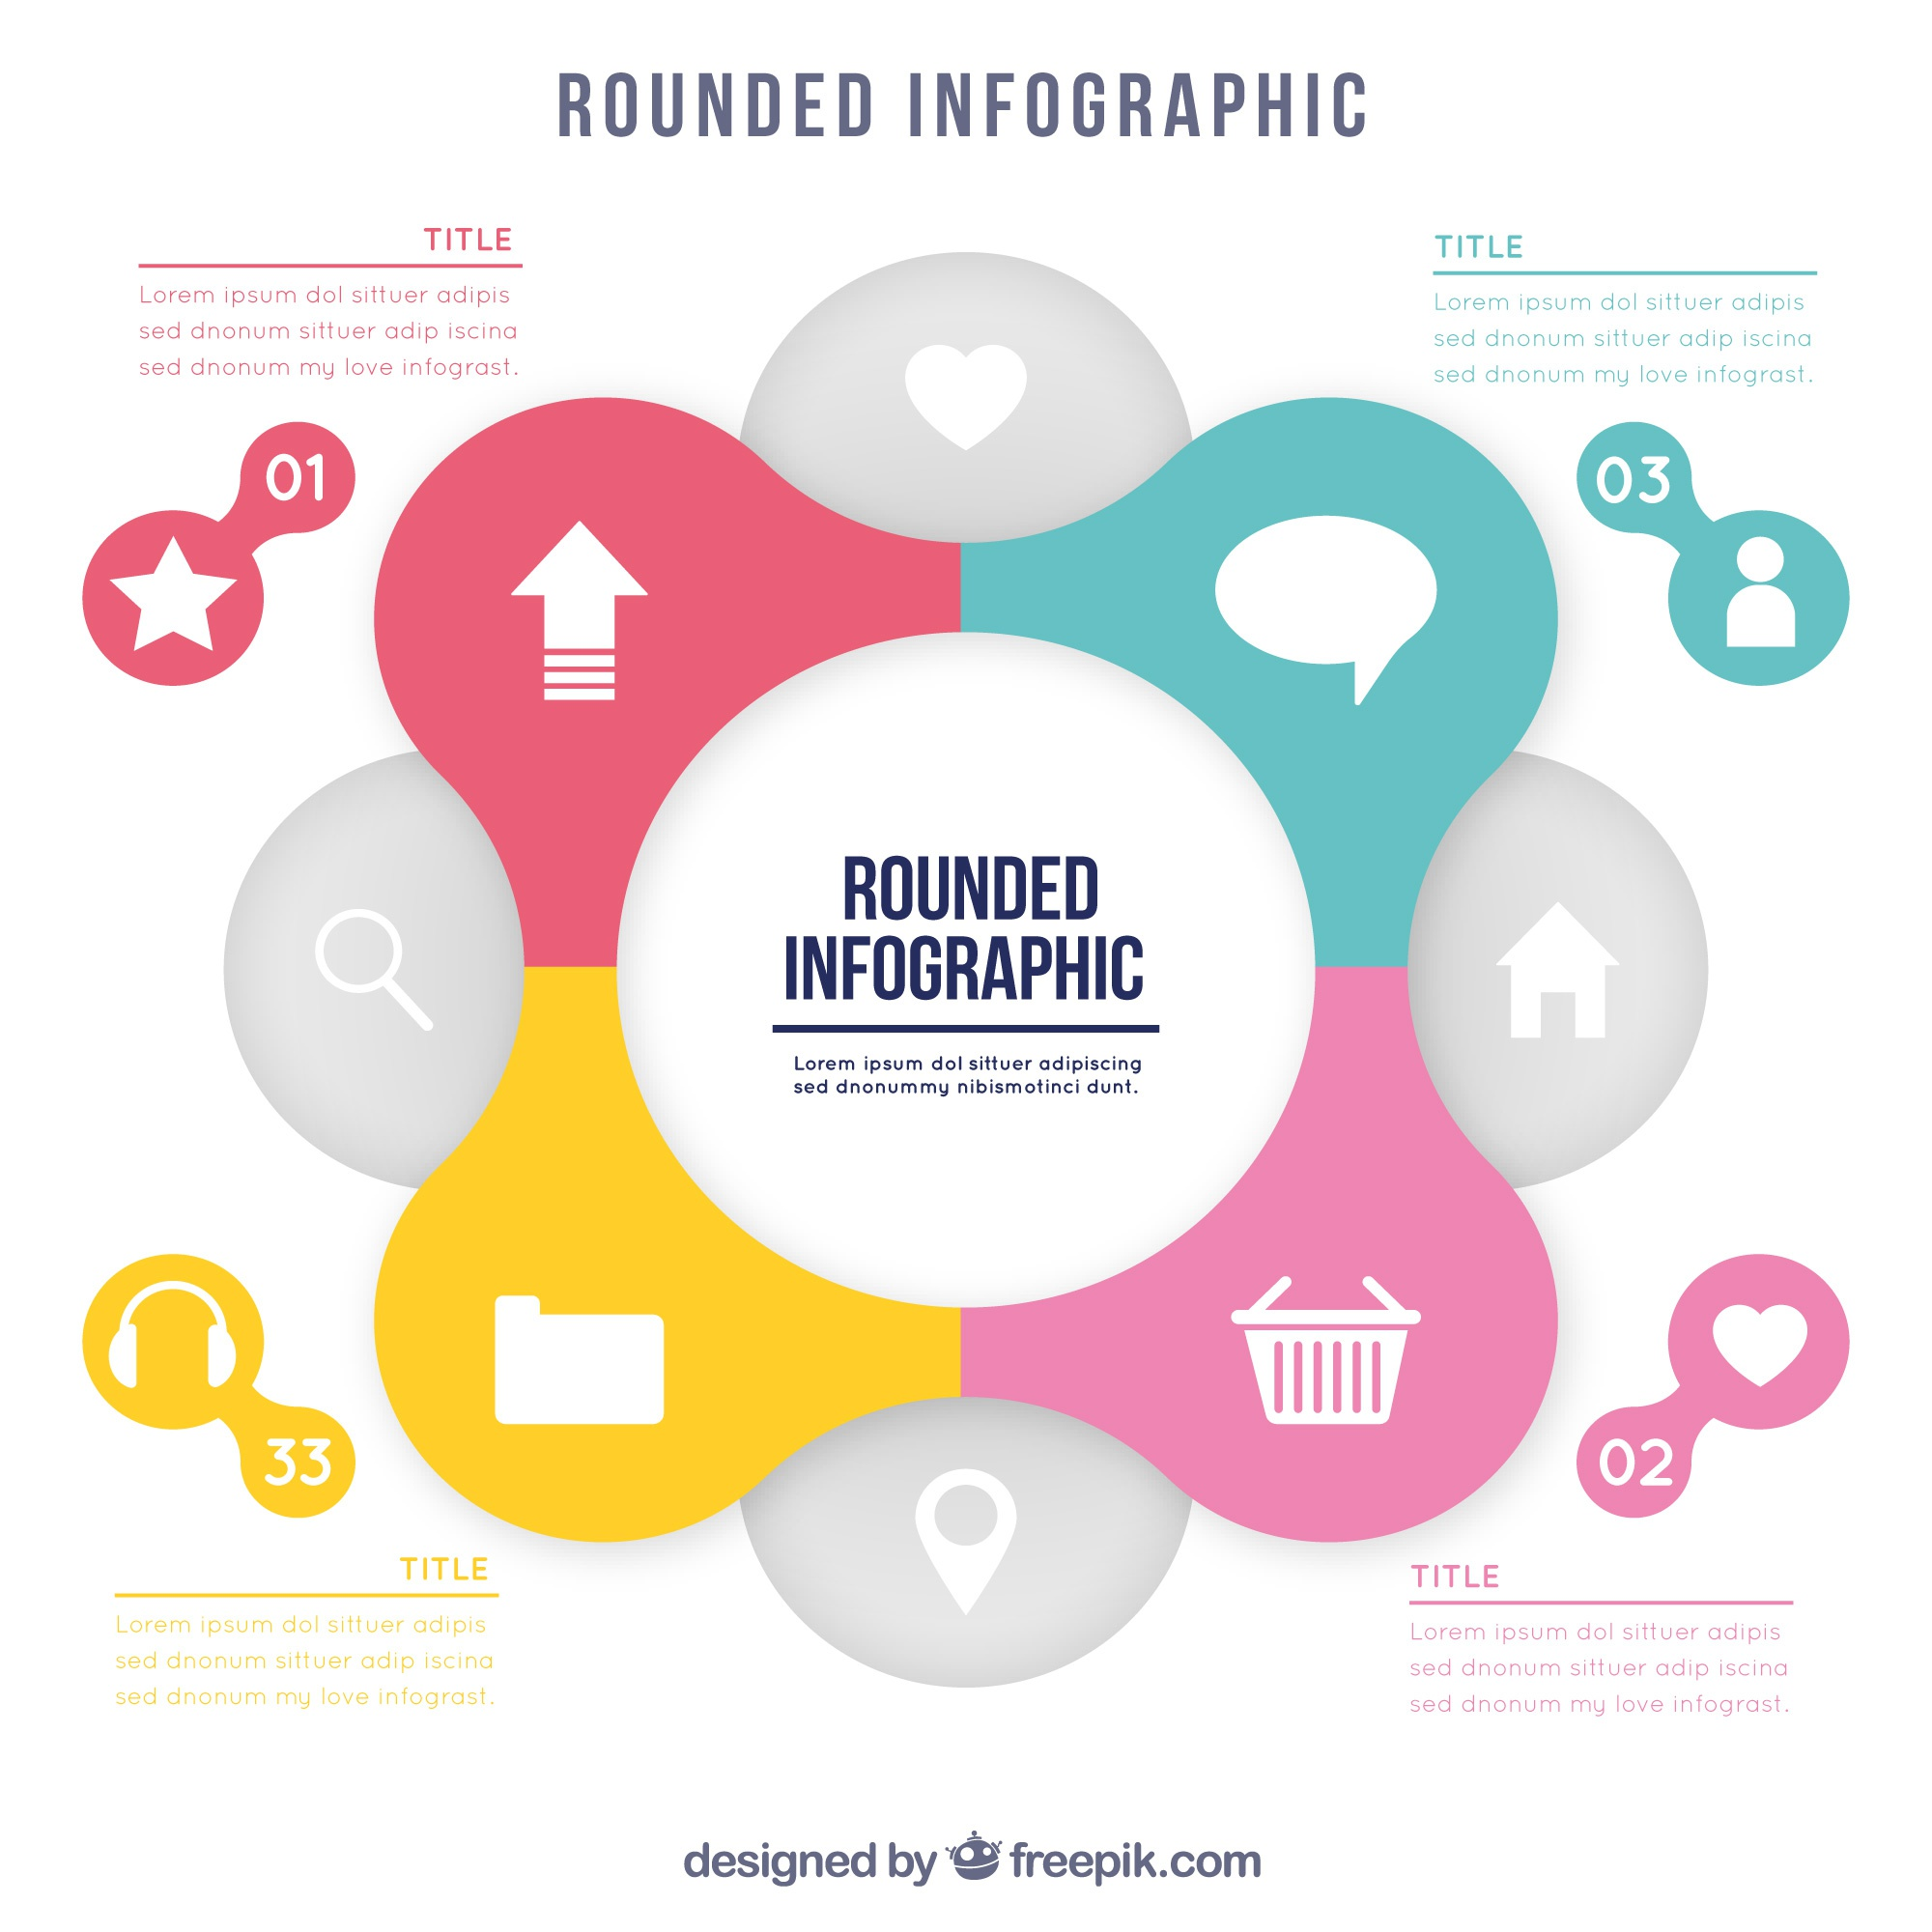 Rounded infographic in flat design